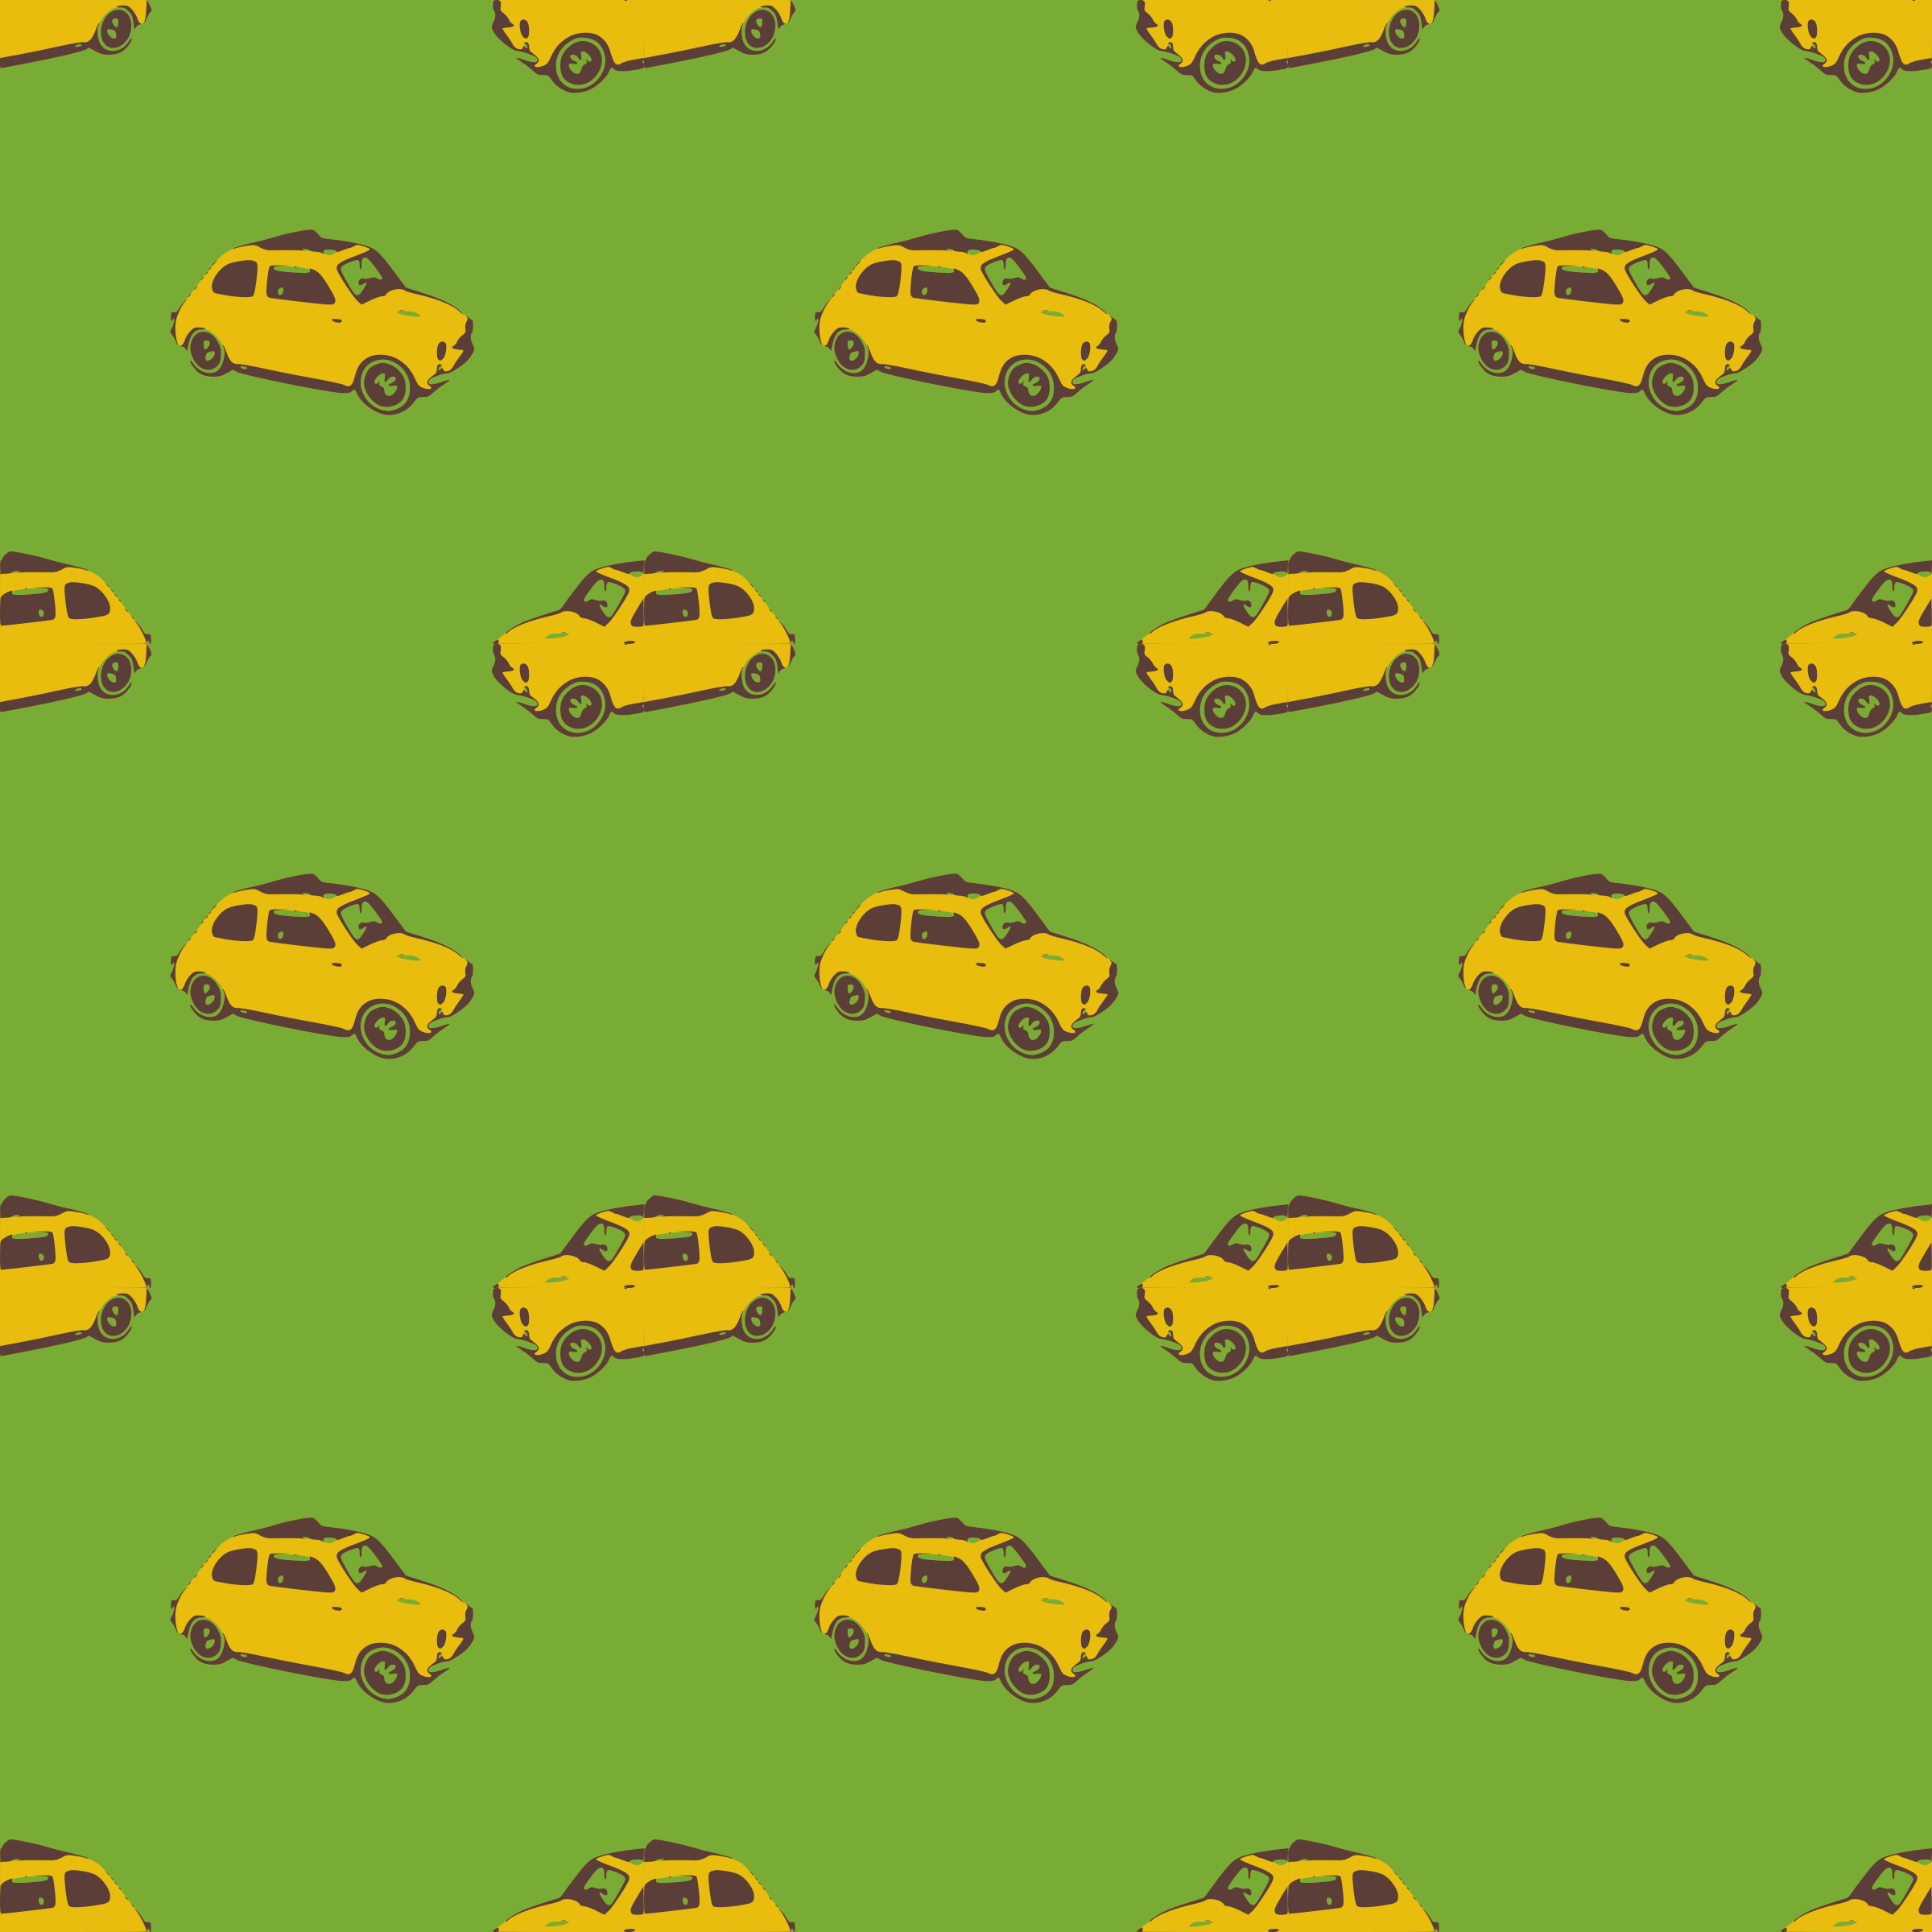 Fiat yellow-seamless pattern by yamachem